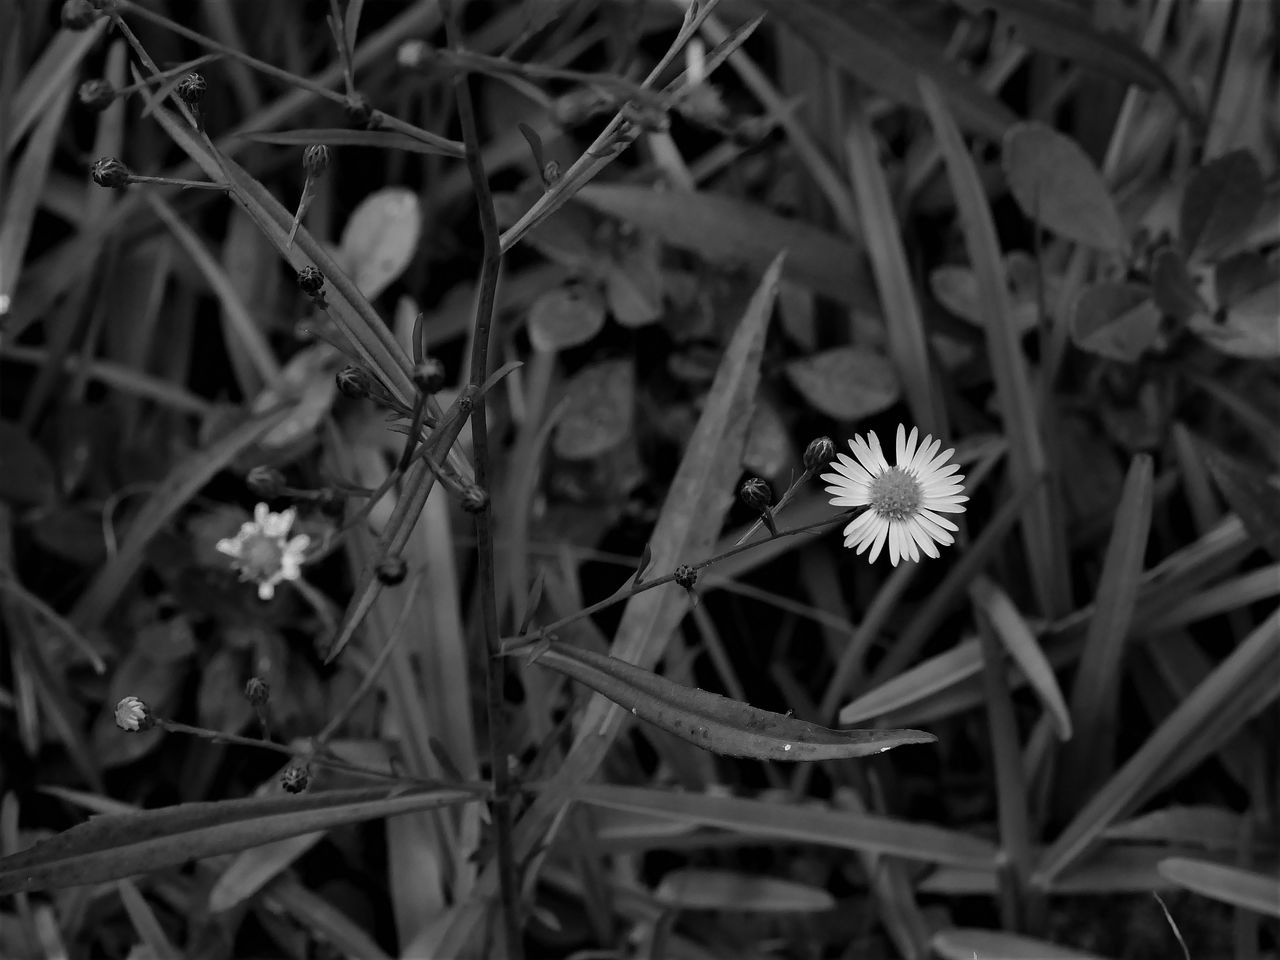 Beauty In Nature Blackandwhite Blooming Close-up Day Flower Flower Head Fragility Freshness Grass Growth High Angle View Monochrome Nature No People Outdoors Petal Plant